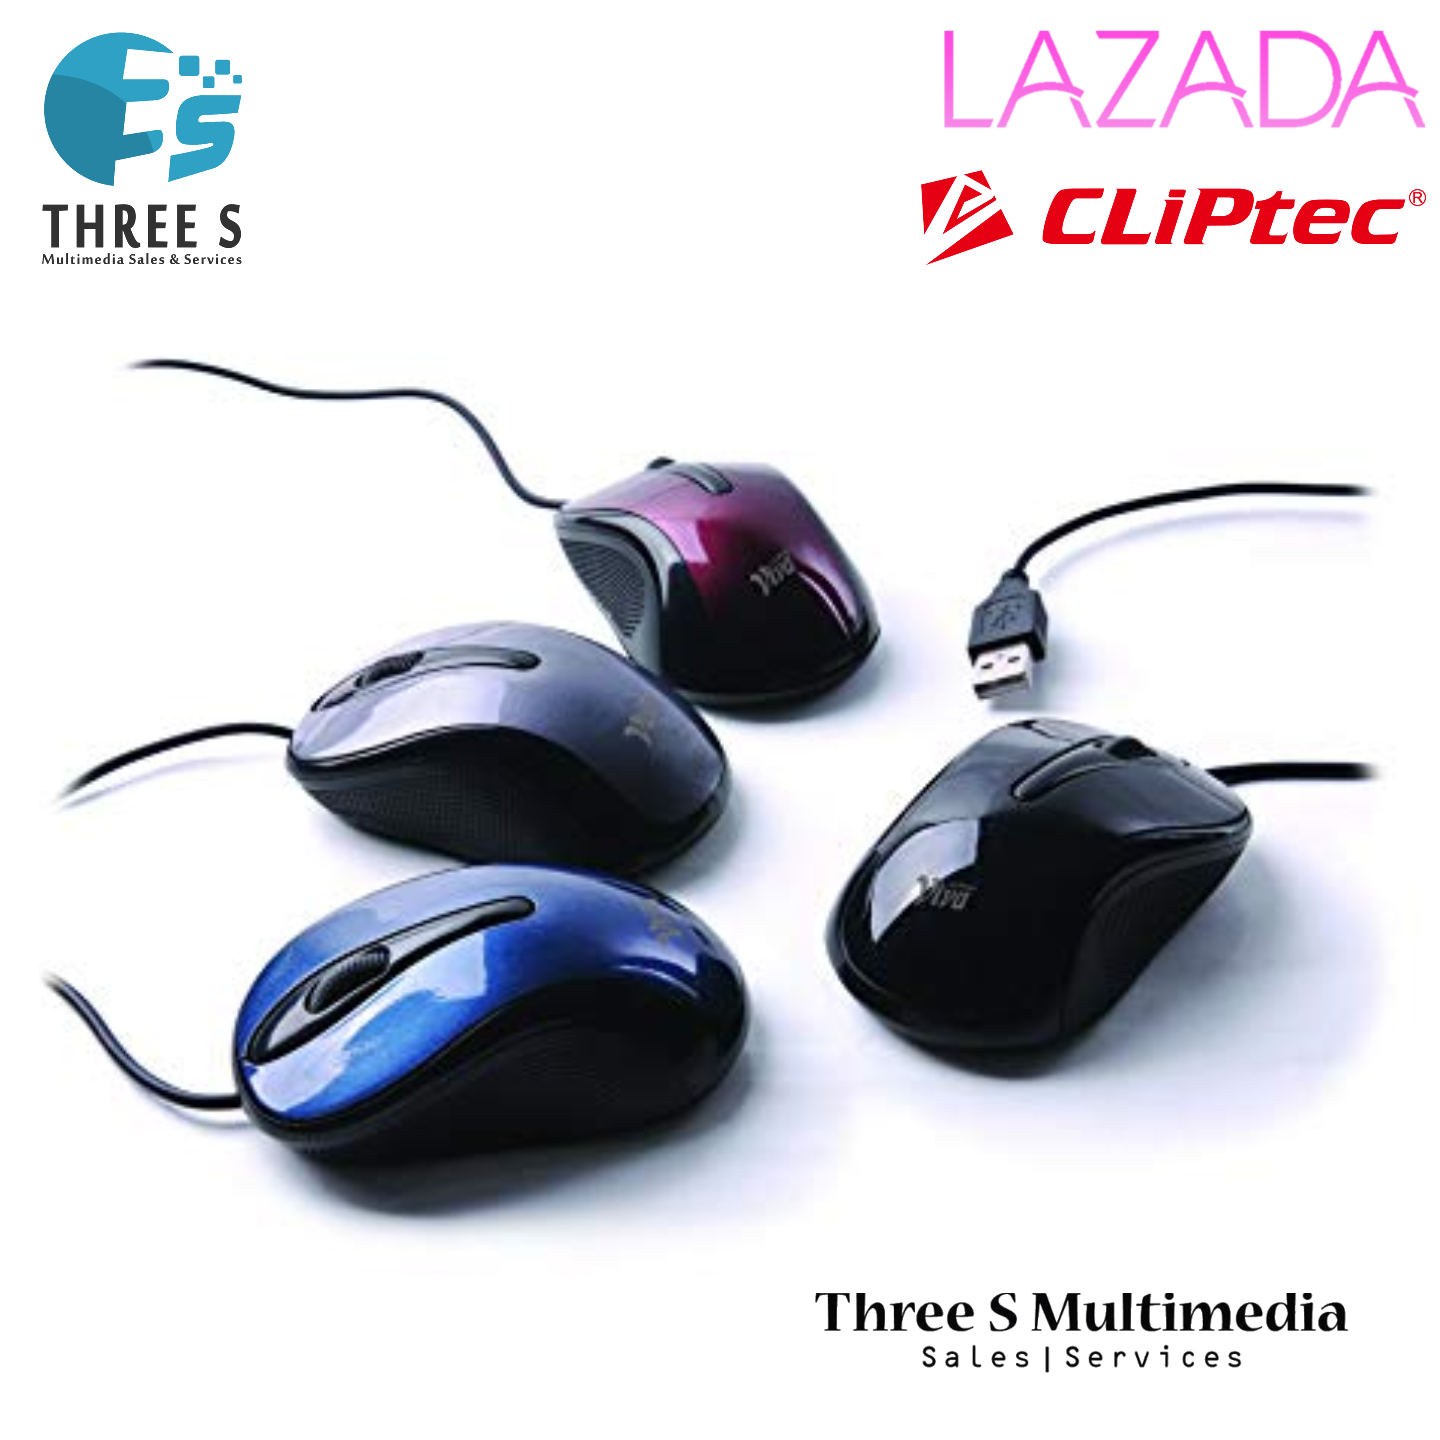 Cliptec Viva Red Optical Mouse / Wired Mouse RZS961